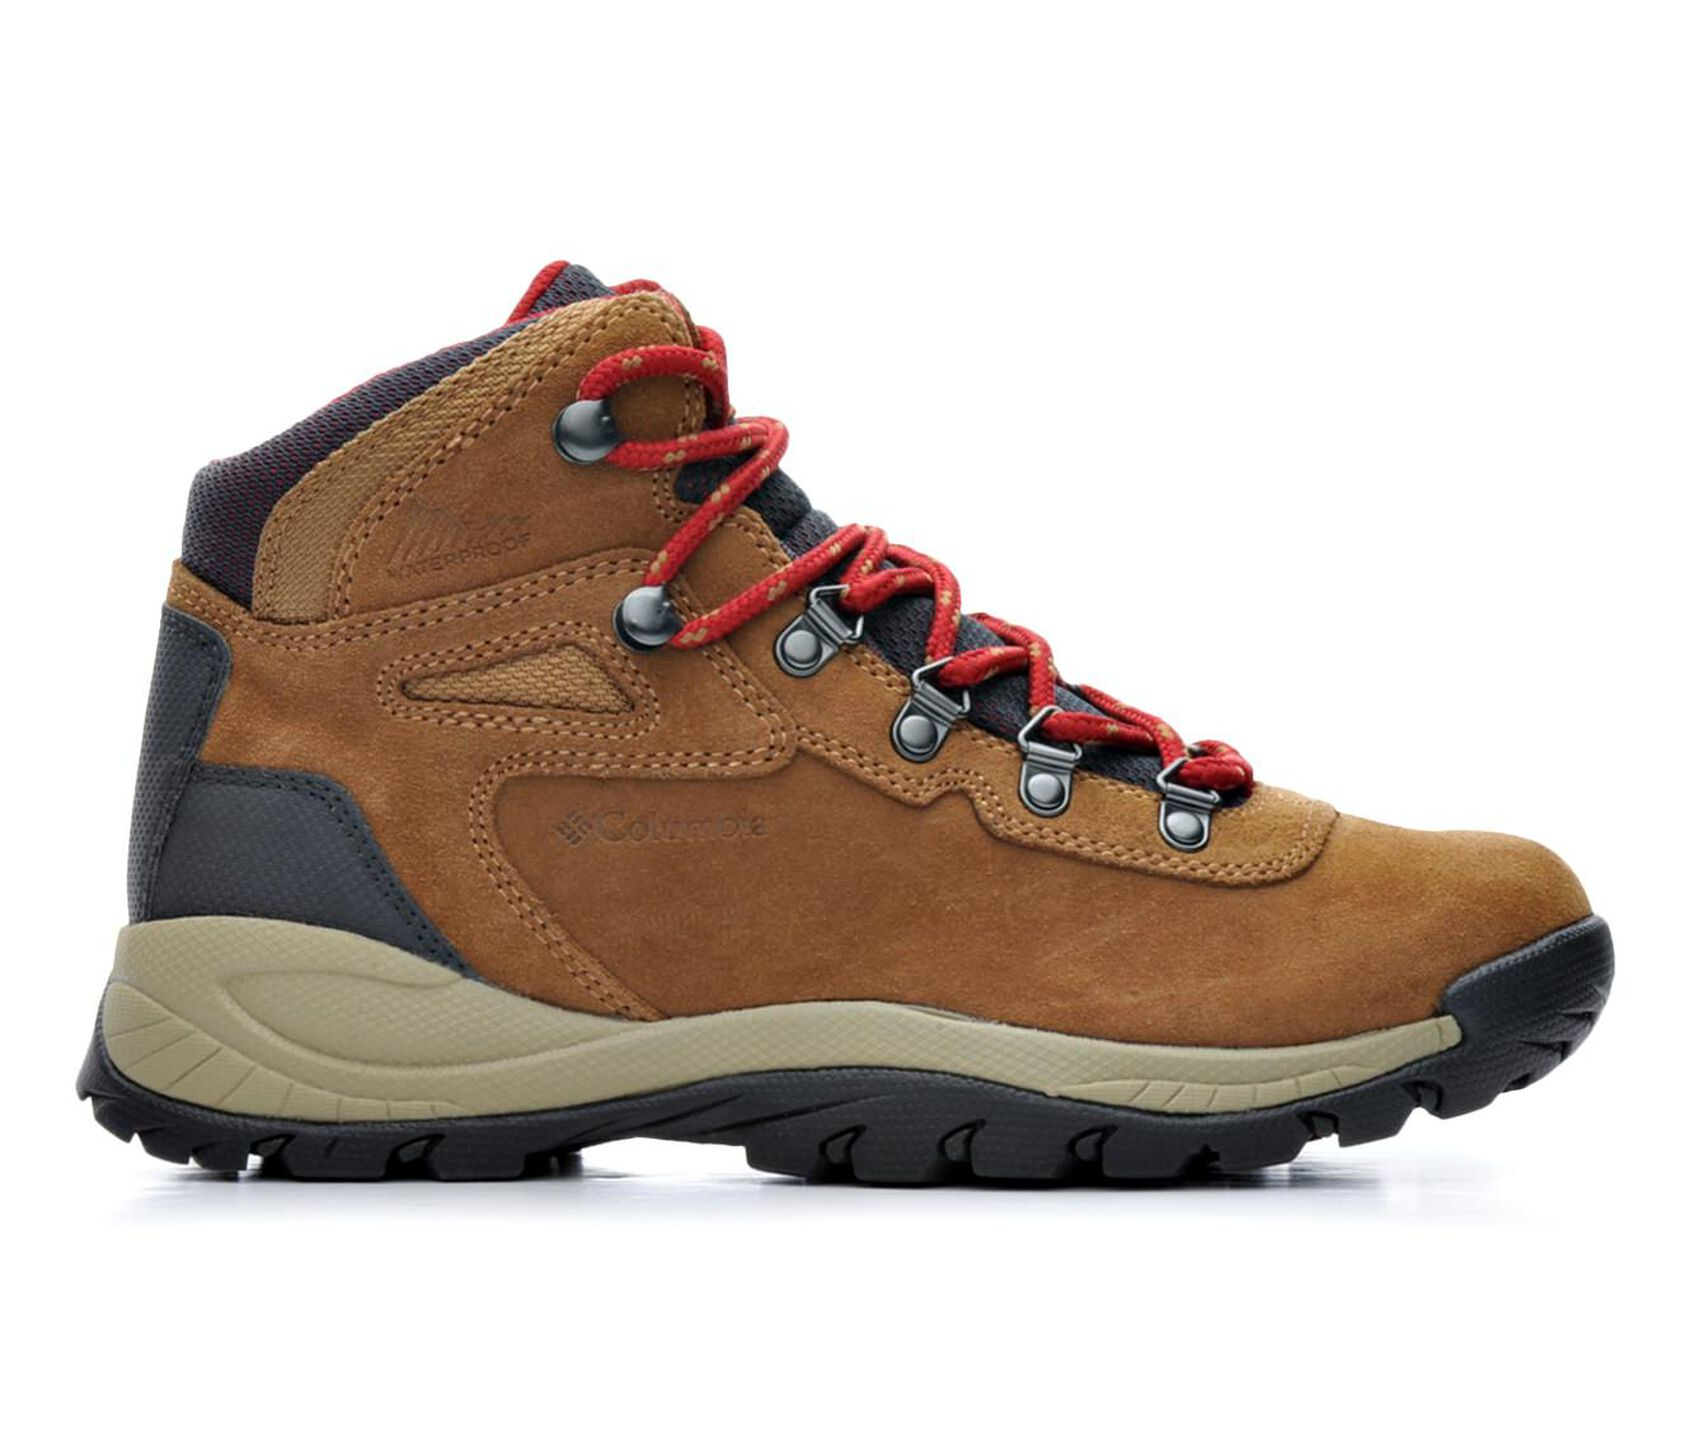 a7fac49903e Women's Columbia Newton Ridge Plus WP Amped Hiking Boots